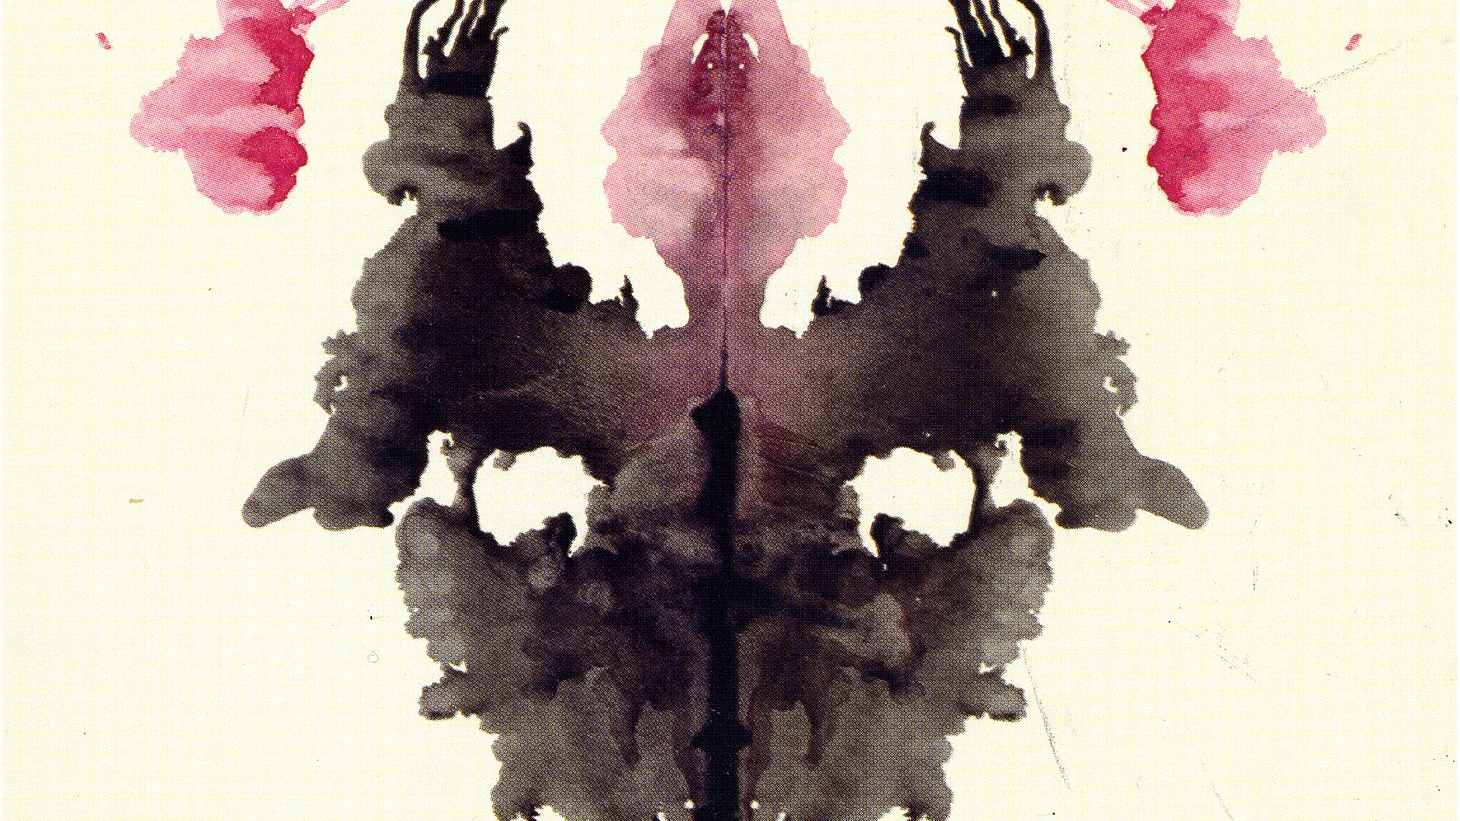 Hermann Rorschach's inkblot test has become ubiquitous in pop-culture as shorthand for both psychiatry and the subconscious. The first biography of Rorschach explores how our popular idea of the test gets it wrong.